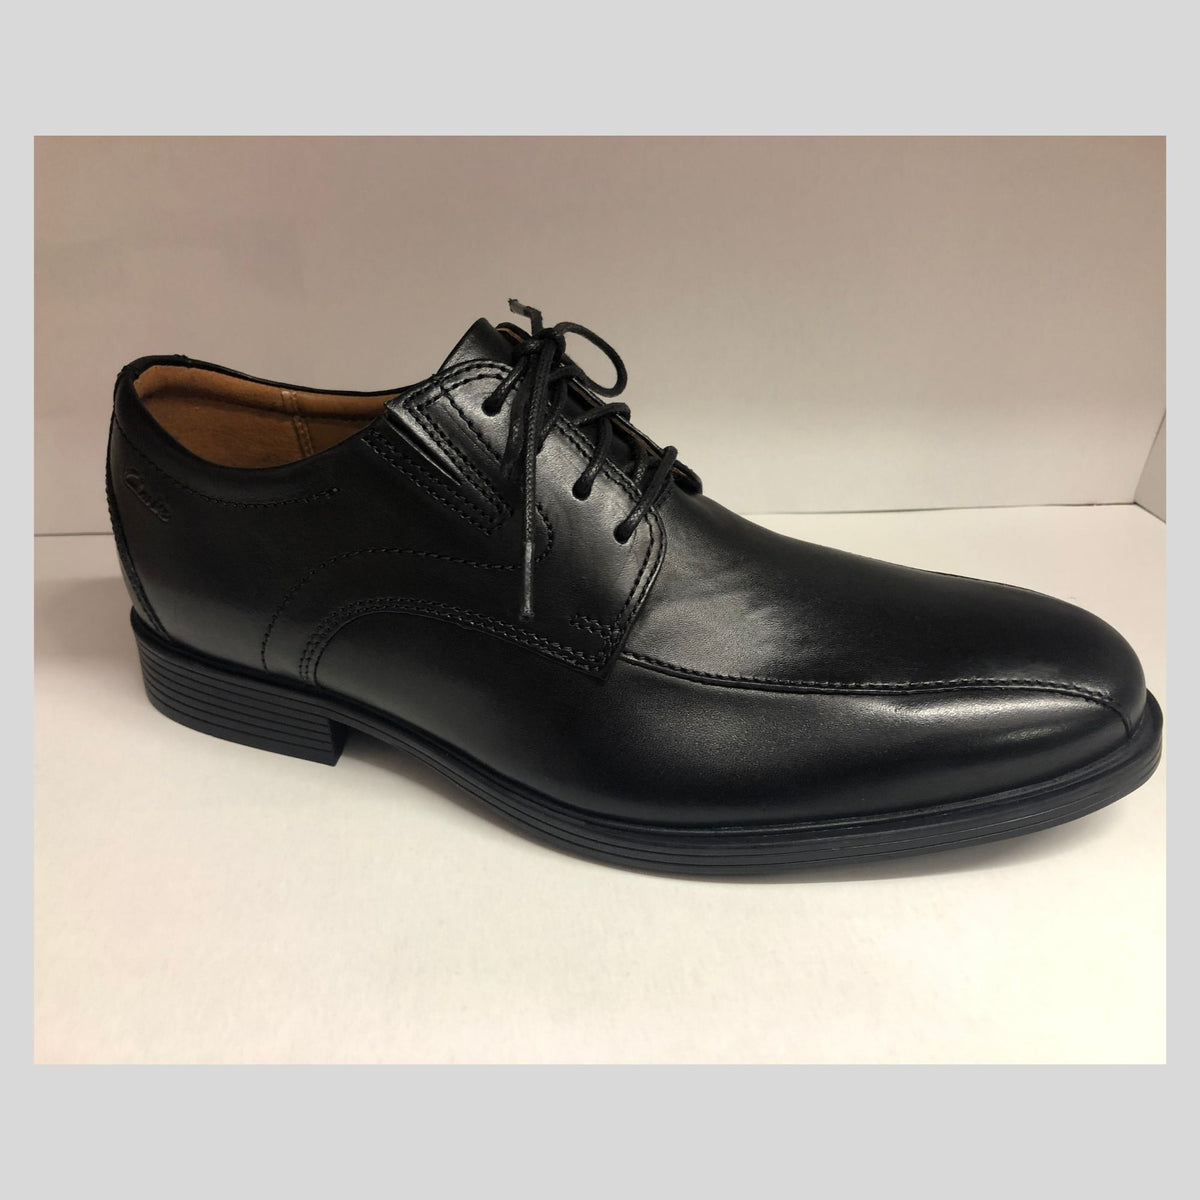 Clarks Whiddon Pace - Black Leather